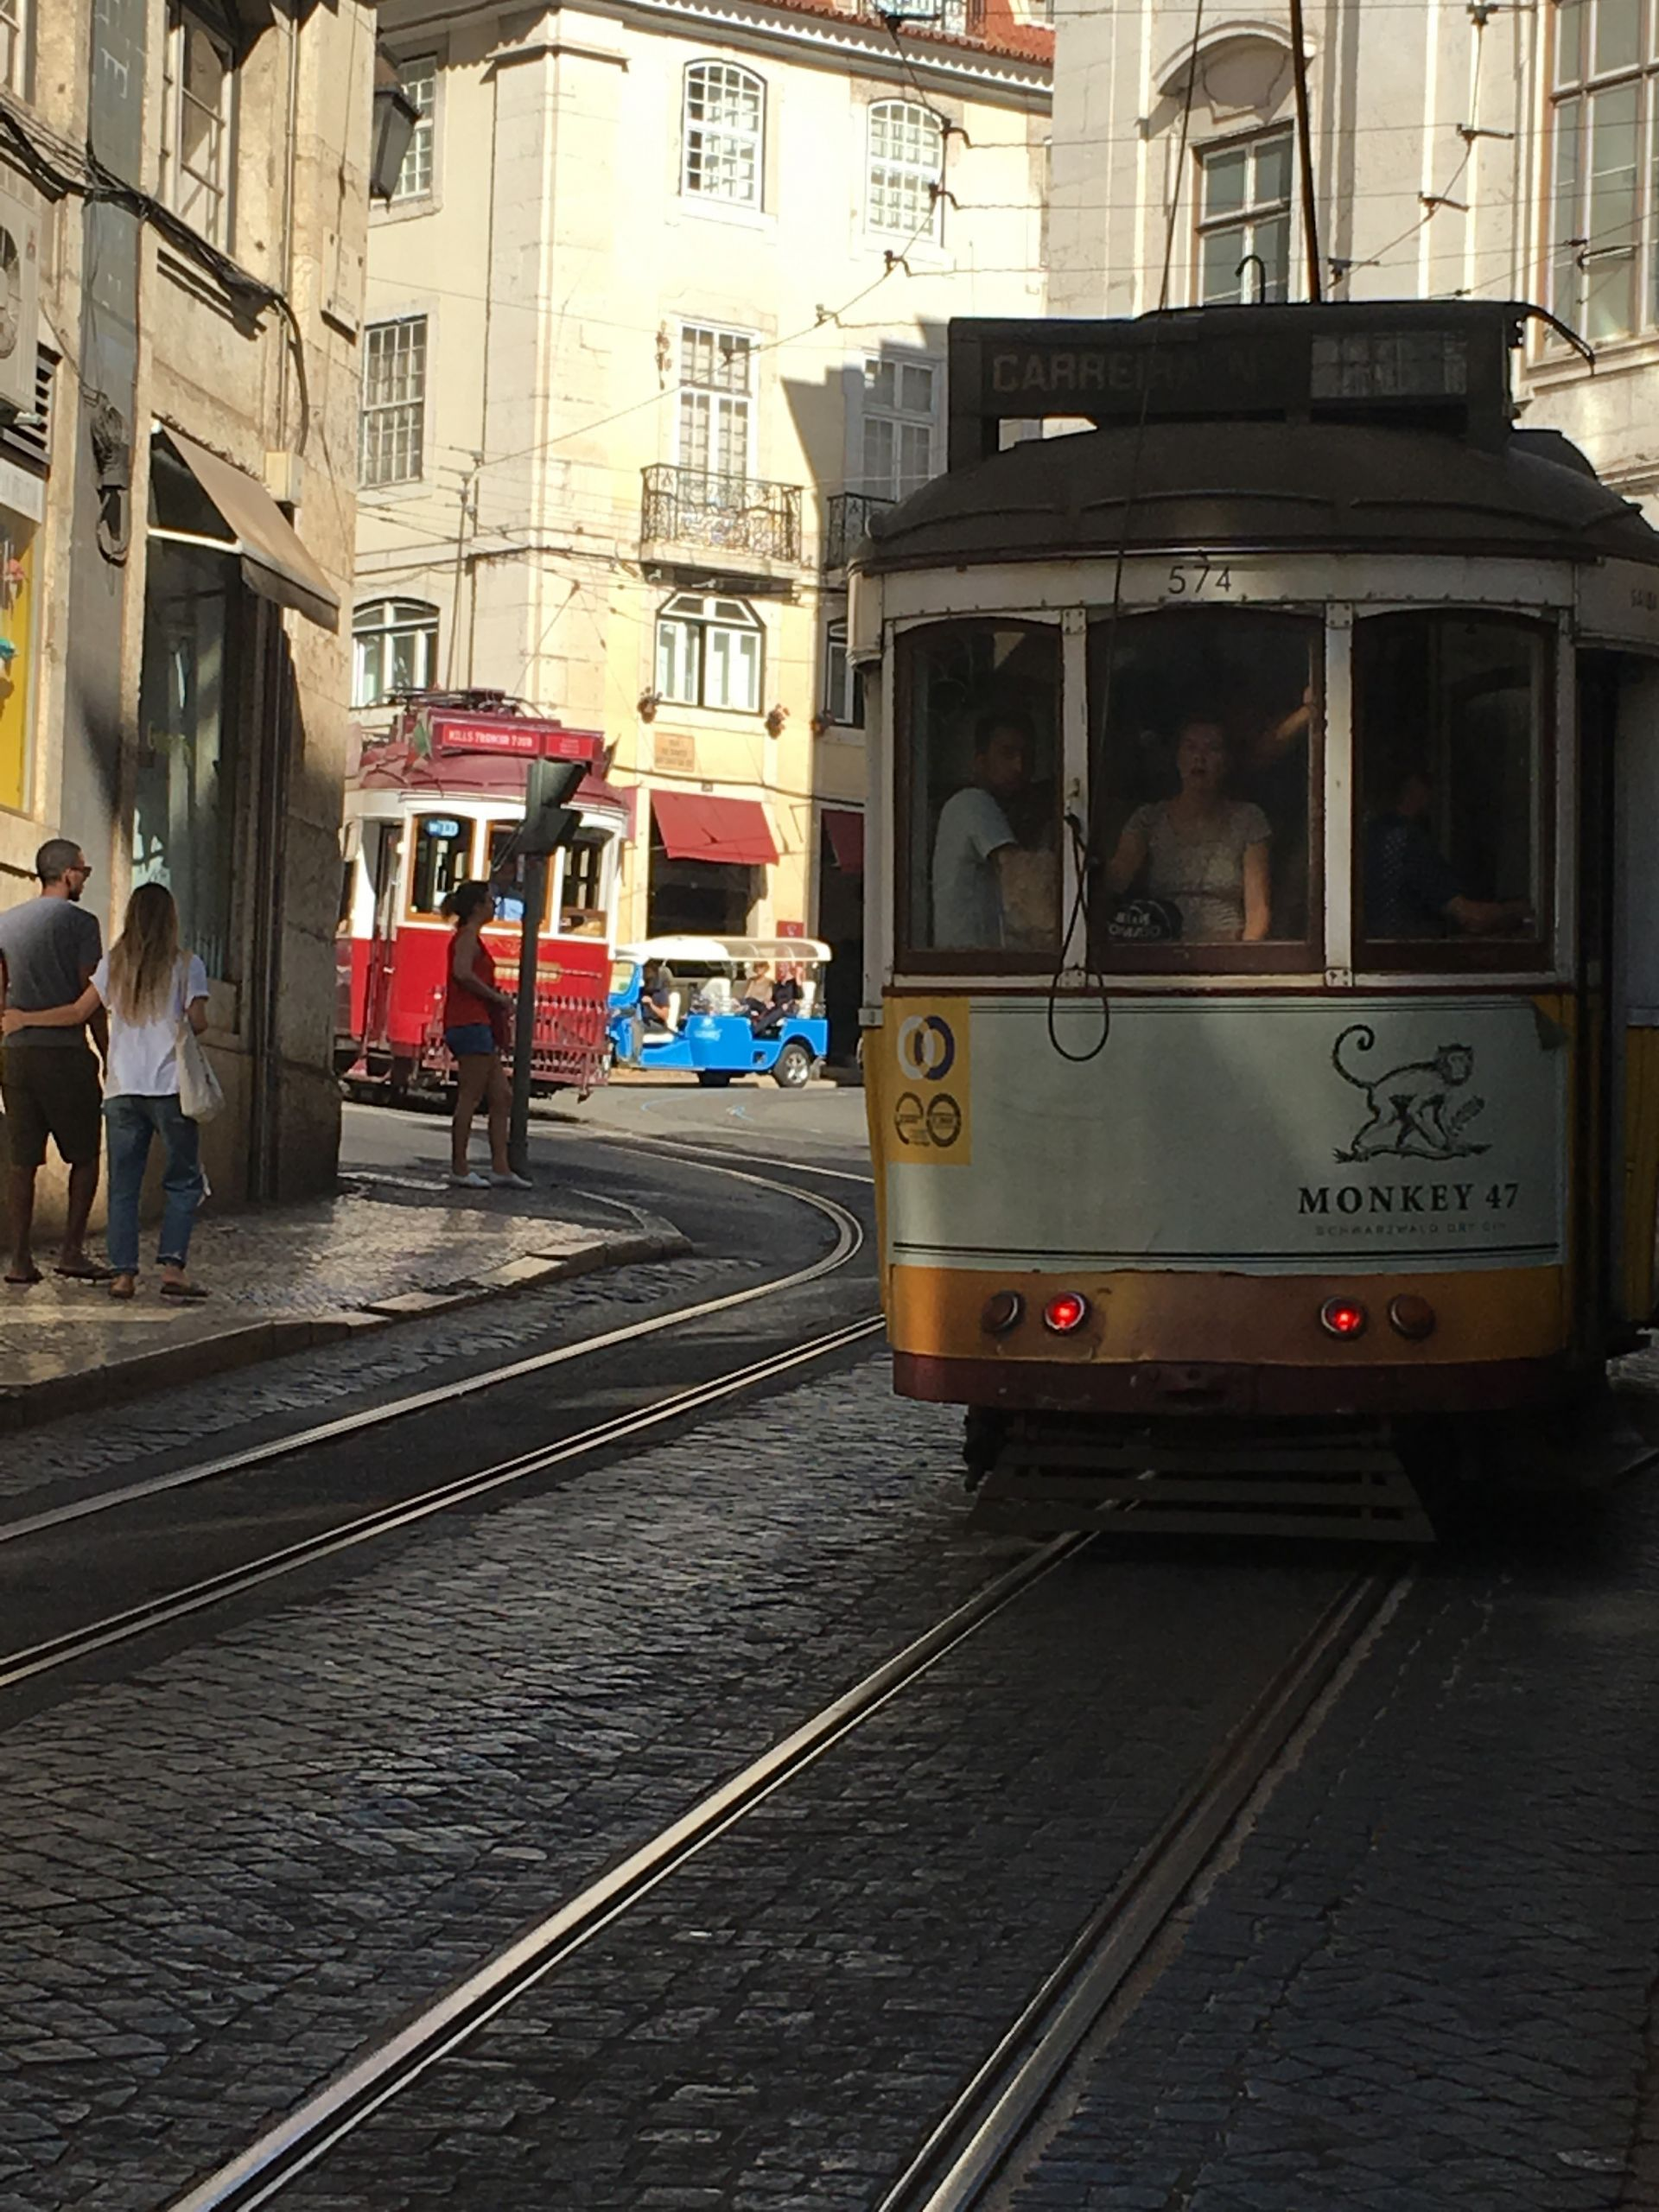 Lisbon-trolly with monkey